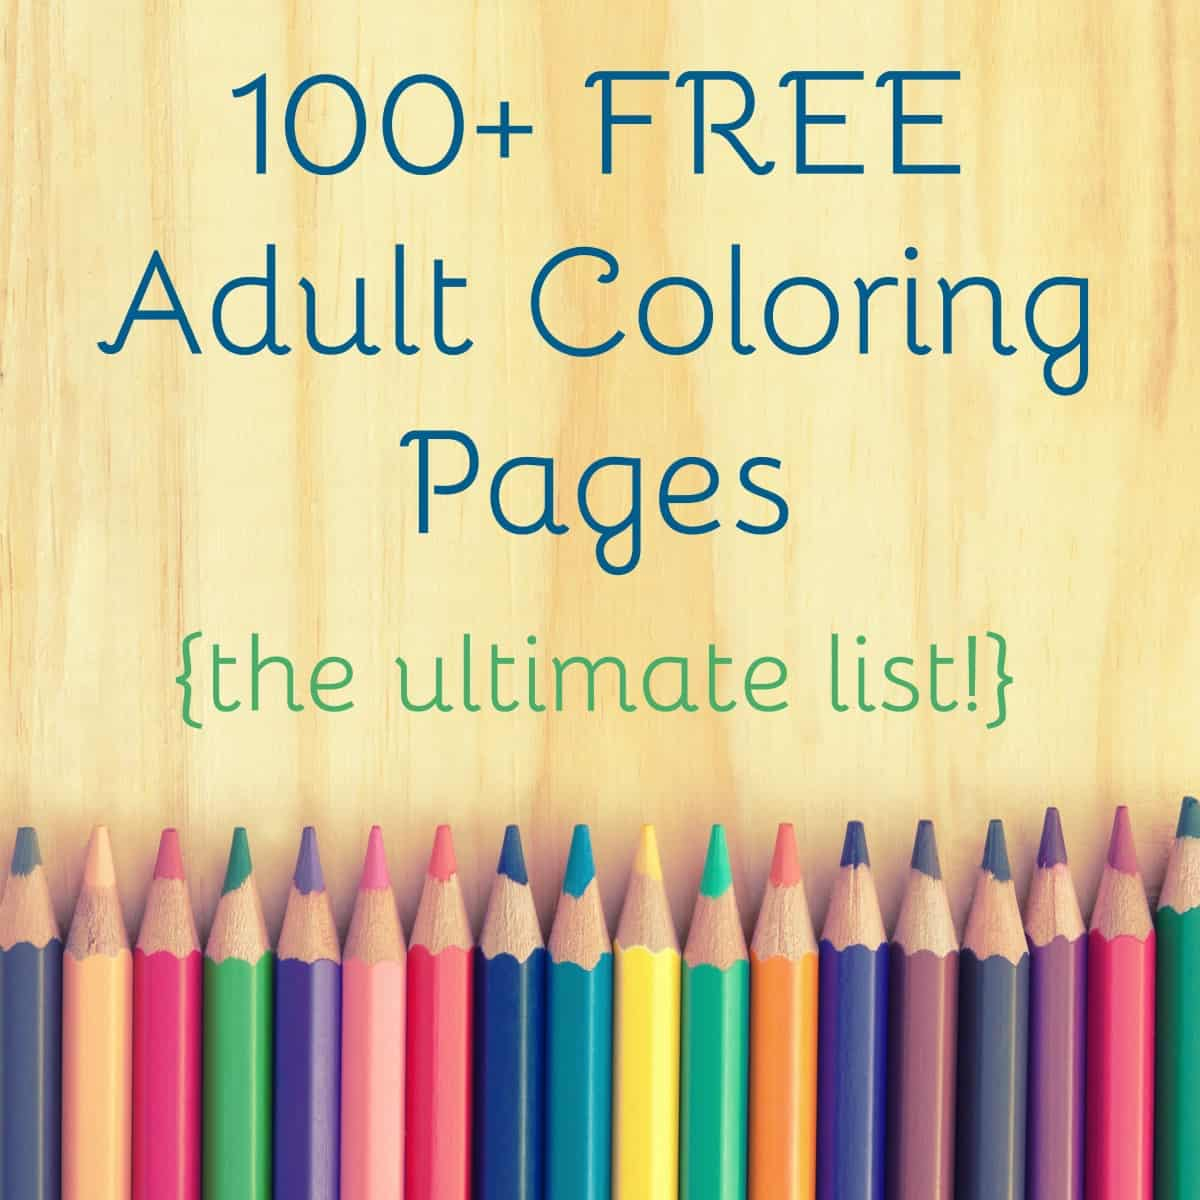 Free Adult Coloring Pages The Ultimate Guide To Free Adult Coloring Pages Diy Candy